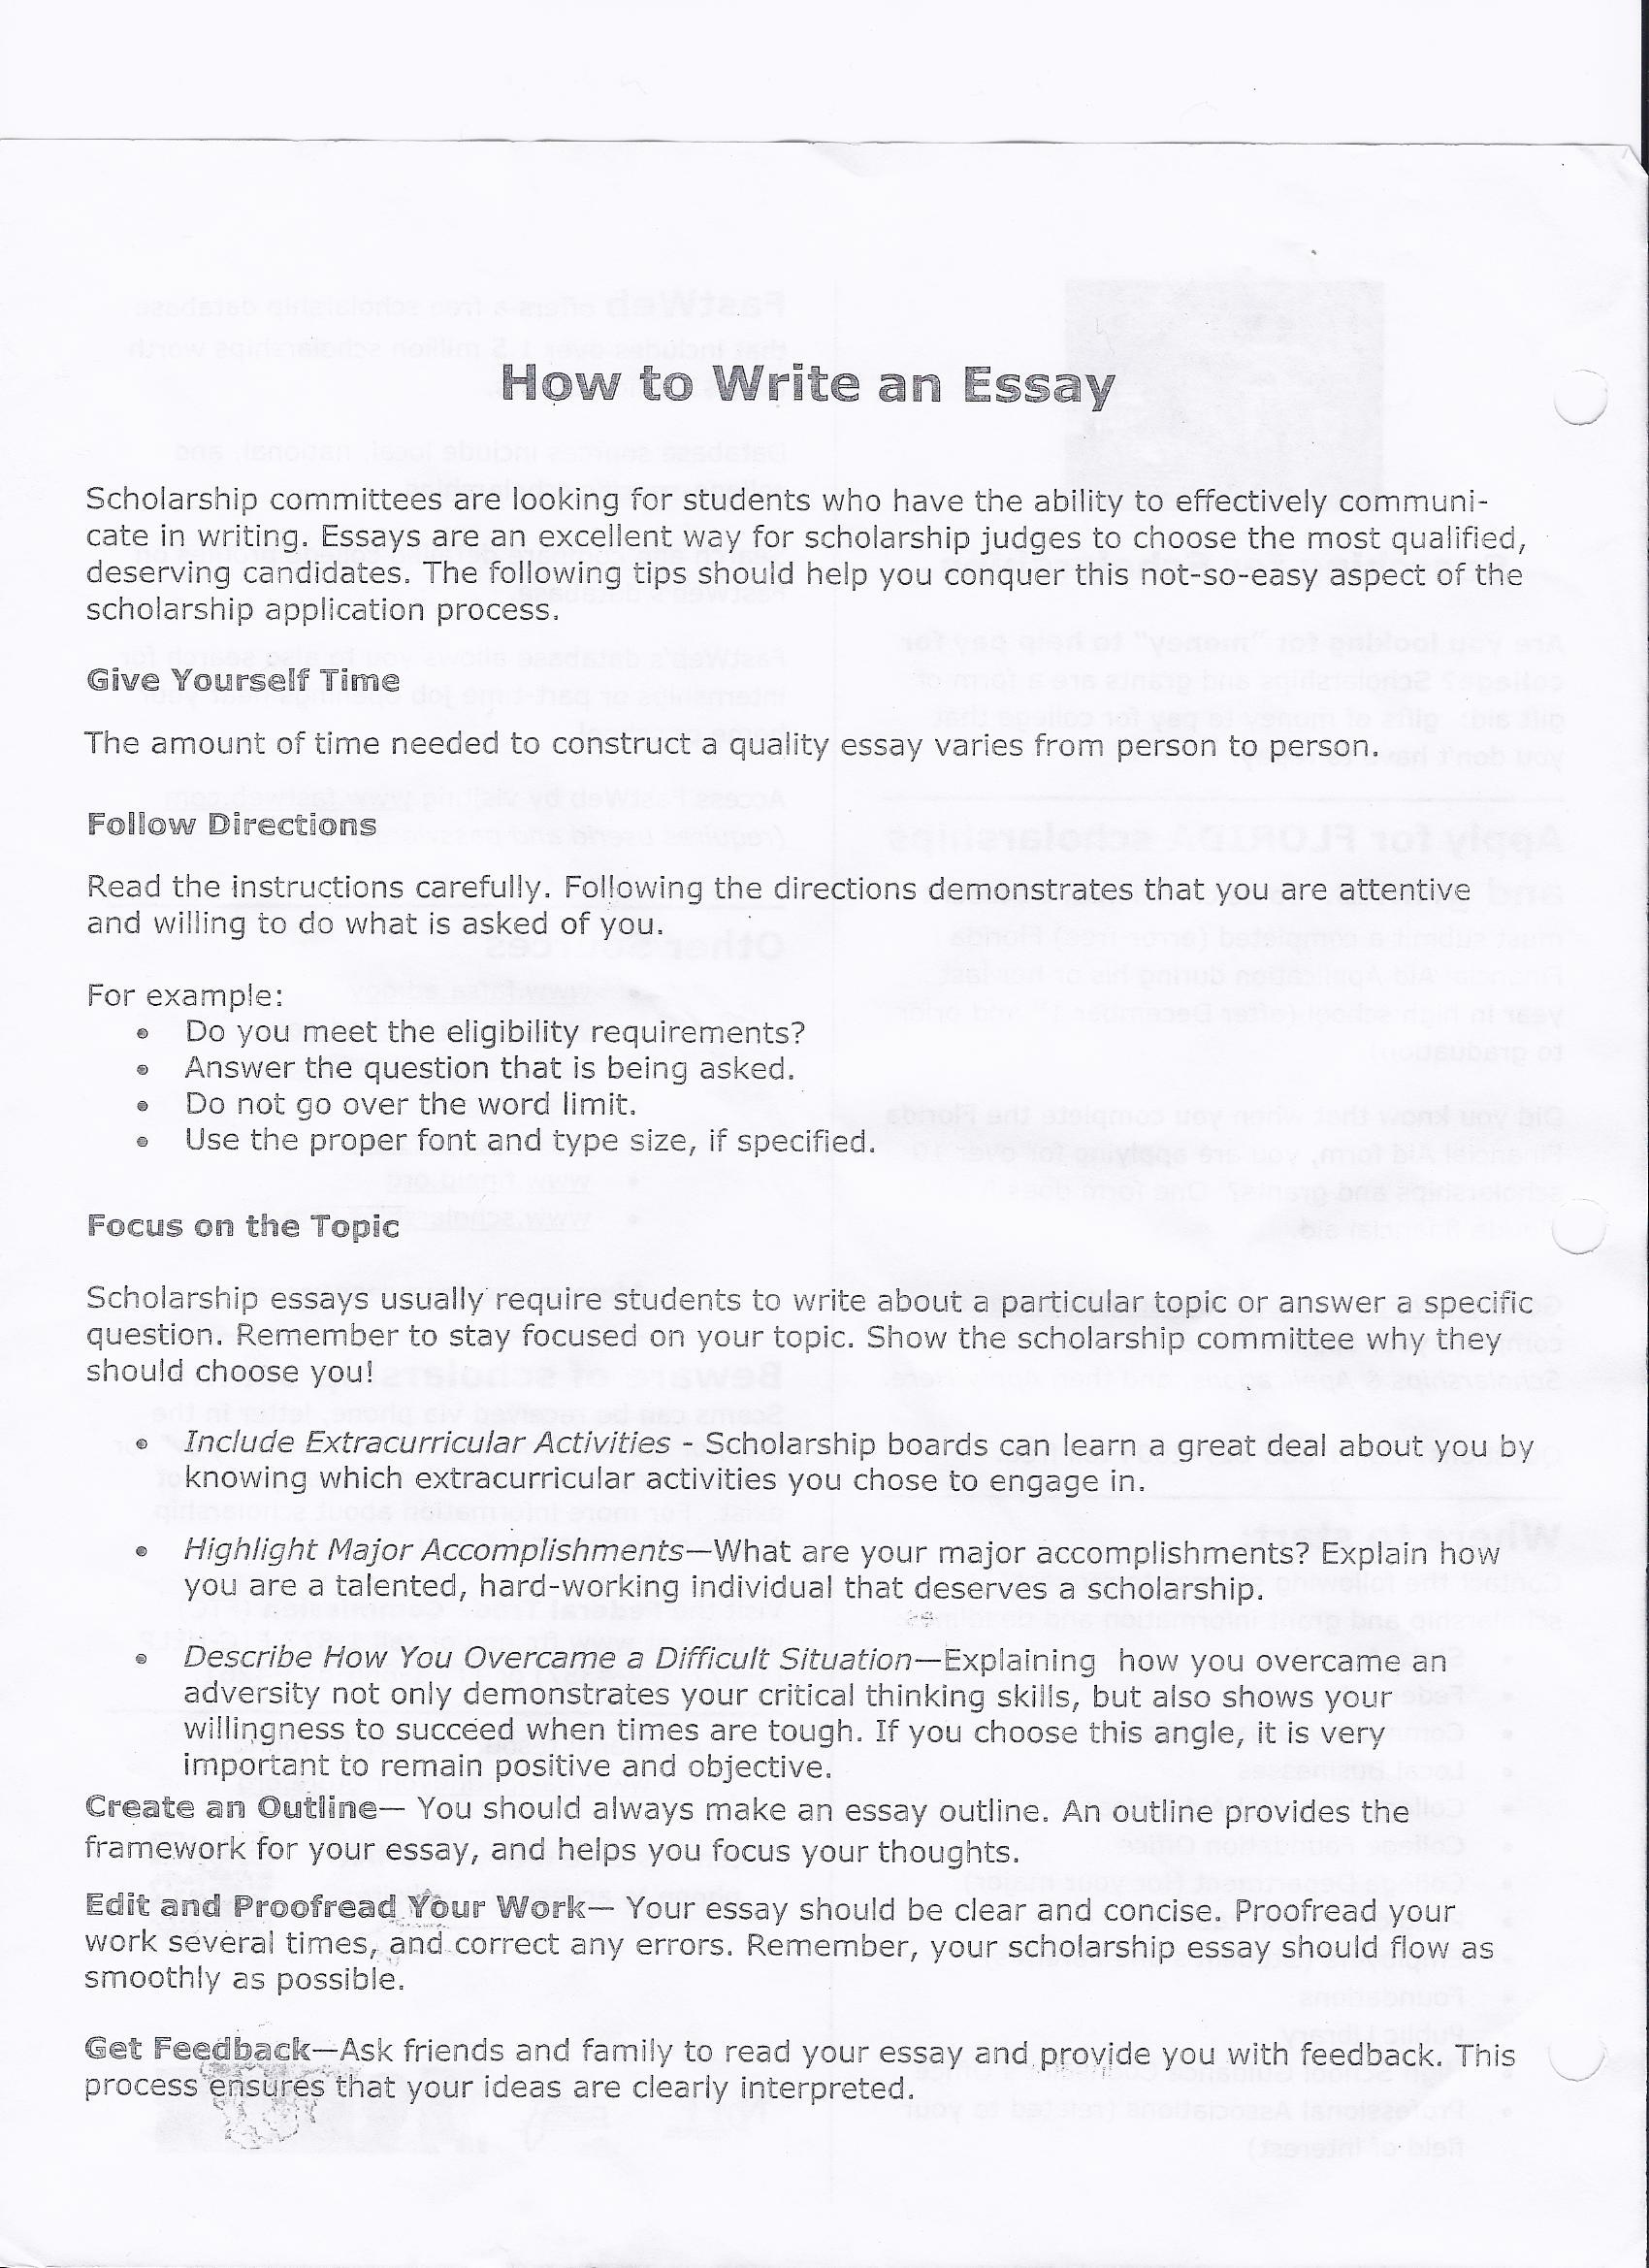 family vacation essay mi familia essay spanish mi familia y yo  collage essay collage essay collage essay jonathon lay personal collage essaycollage essay buy key stage geography